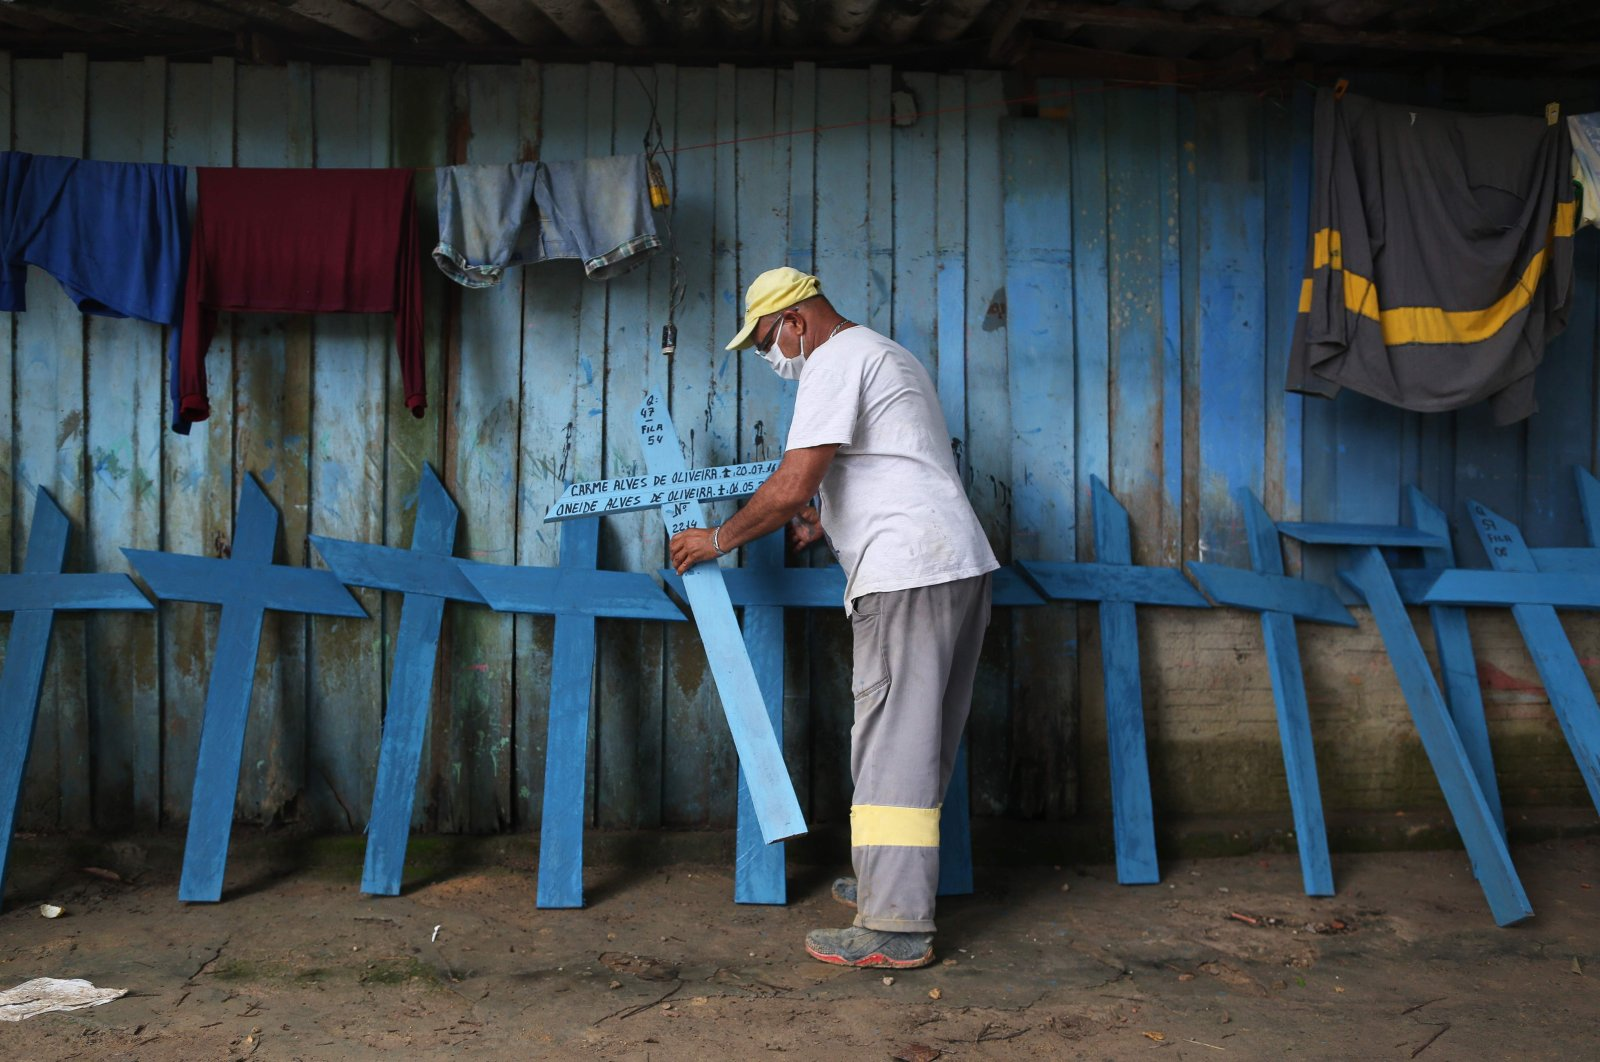 A Brazilian working at Nossa Senhora cemetery places wooden crosses against a wall, Manaus, Brazil, May 08, 2020. (AFP Photo)